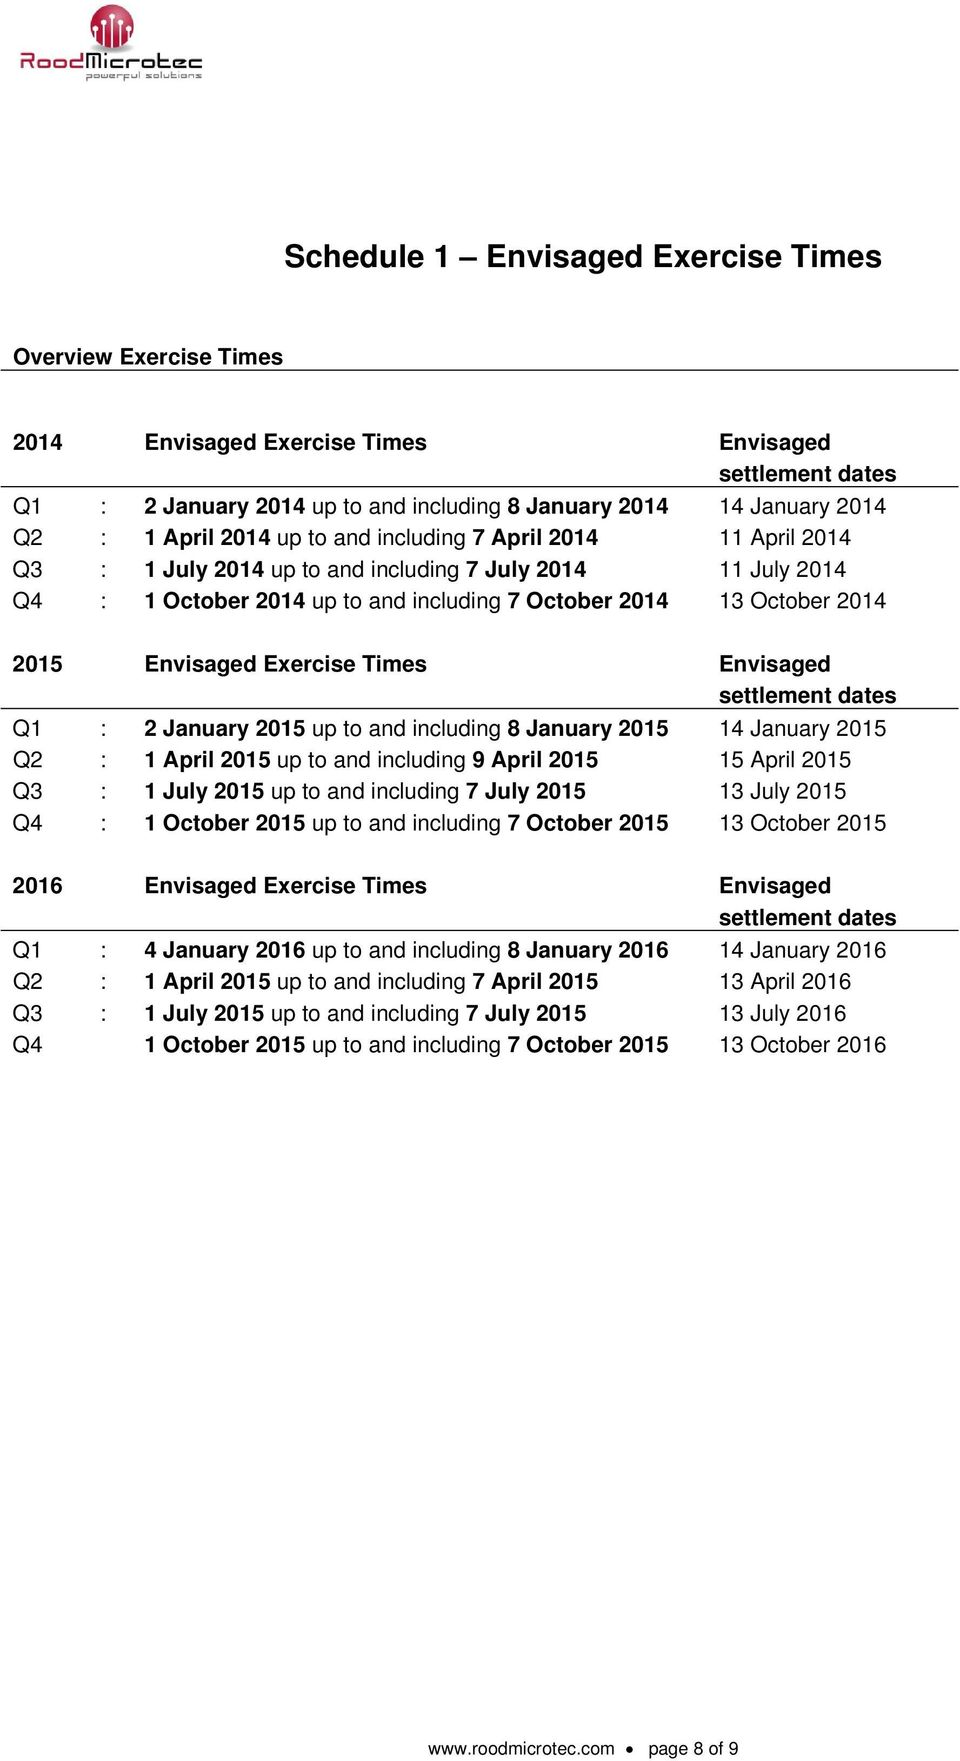 Envisaged Exercise Times Envisaged settlement dates Q1 : 2 January 2015 up to and including 8 January 2015 14 January 2015 Q2 : 1 April 2015 up to and including 9 April 2015 15 April 2015 Q3 : 1 July